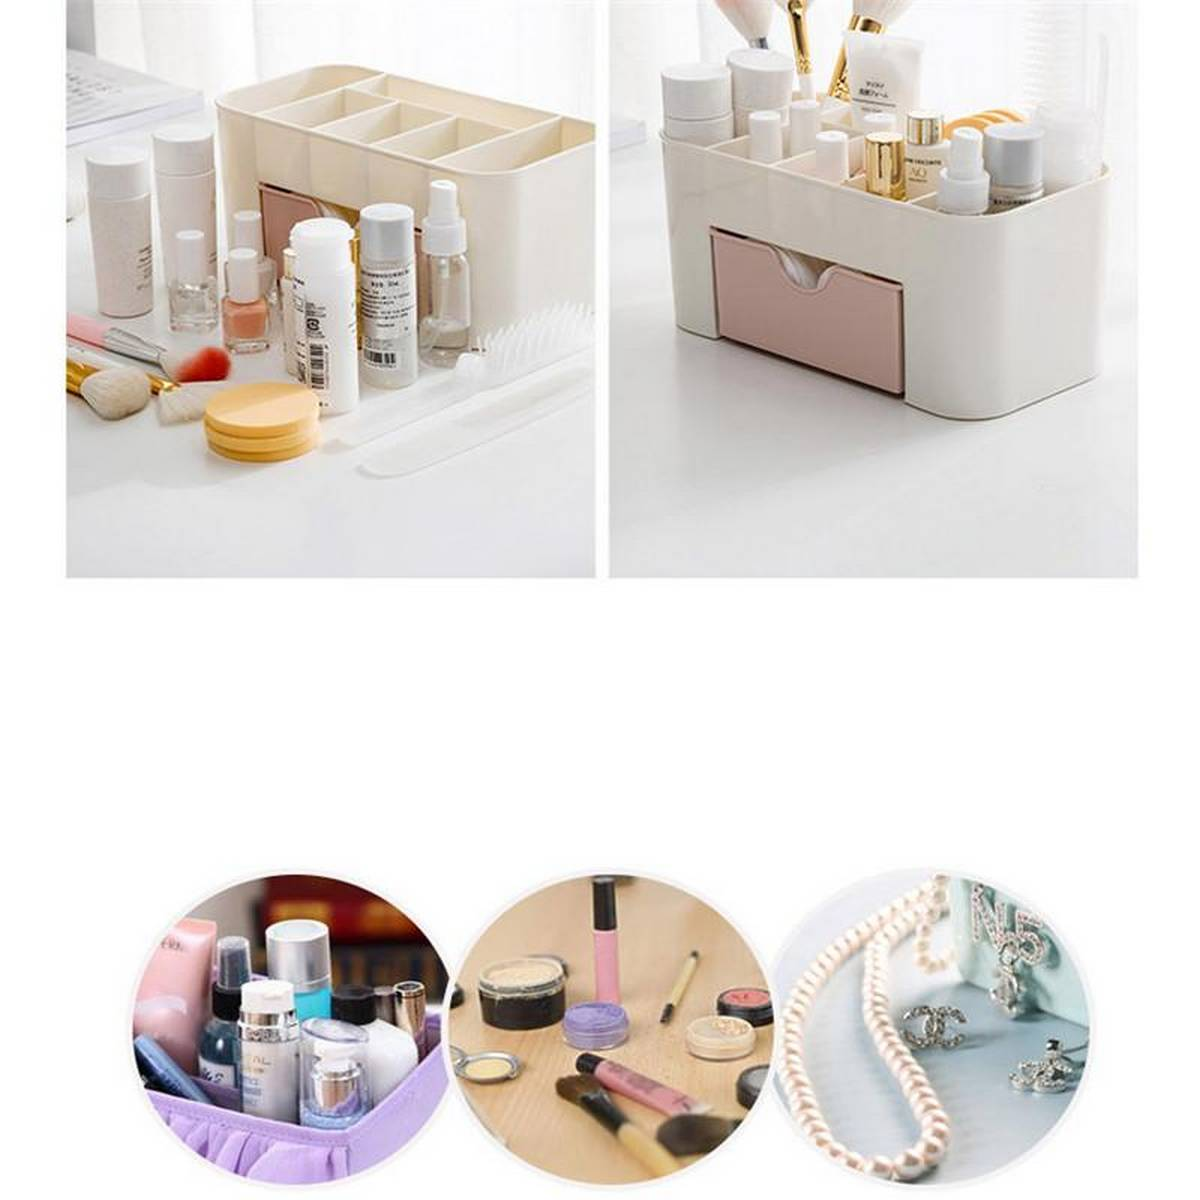 Plastic Makeup Storage Box  Cosmetic Organizer Jewelry Box Small Drawer Office Home Miscellaneous, Organizer Storage Container / Plastic Drawer Cosmetic Box Desktop Make Up Jewelry Case Home Organizer Accessories Supplies Gear Stuff